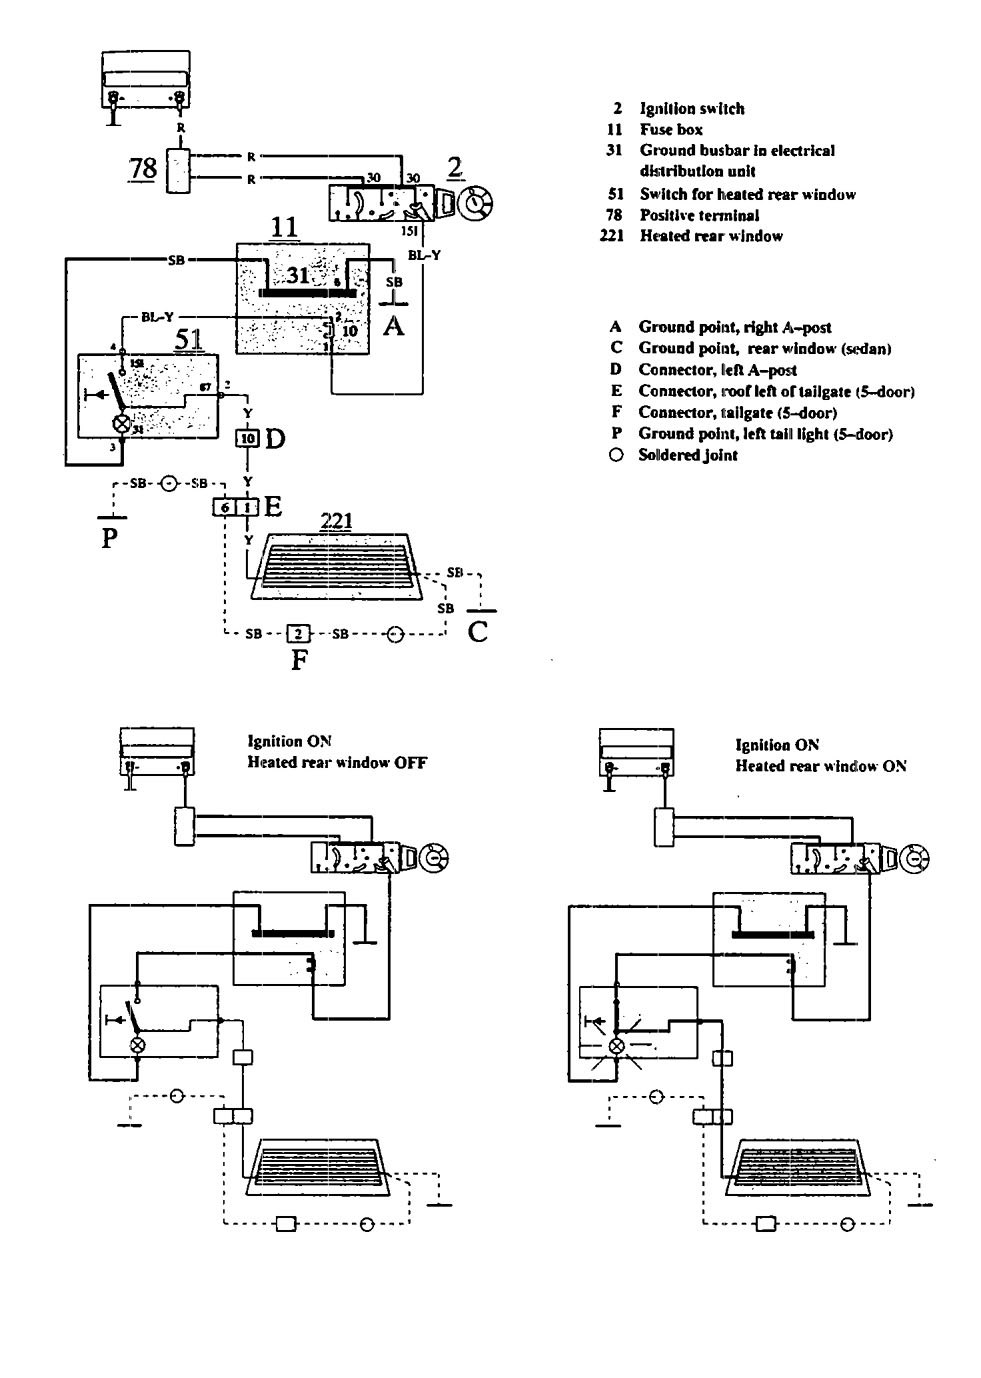 1997 Buick Park Avenue Rear Defogger Wiring Diagram Not Lossing Fuse Library Rh 91 Skriptoase De Engine 2001